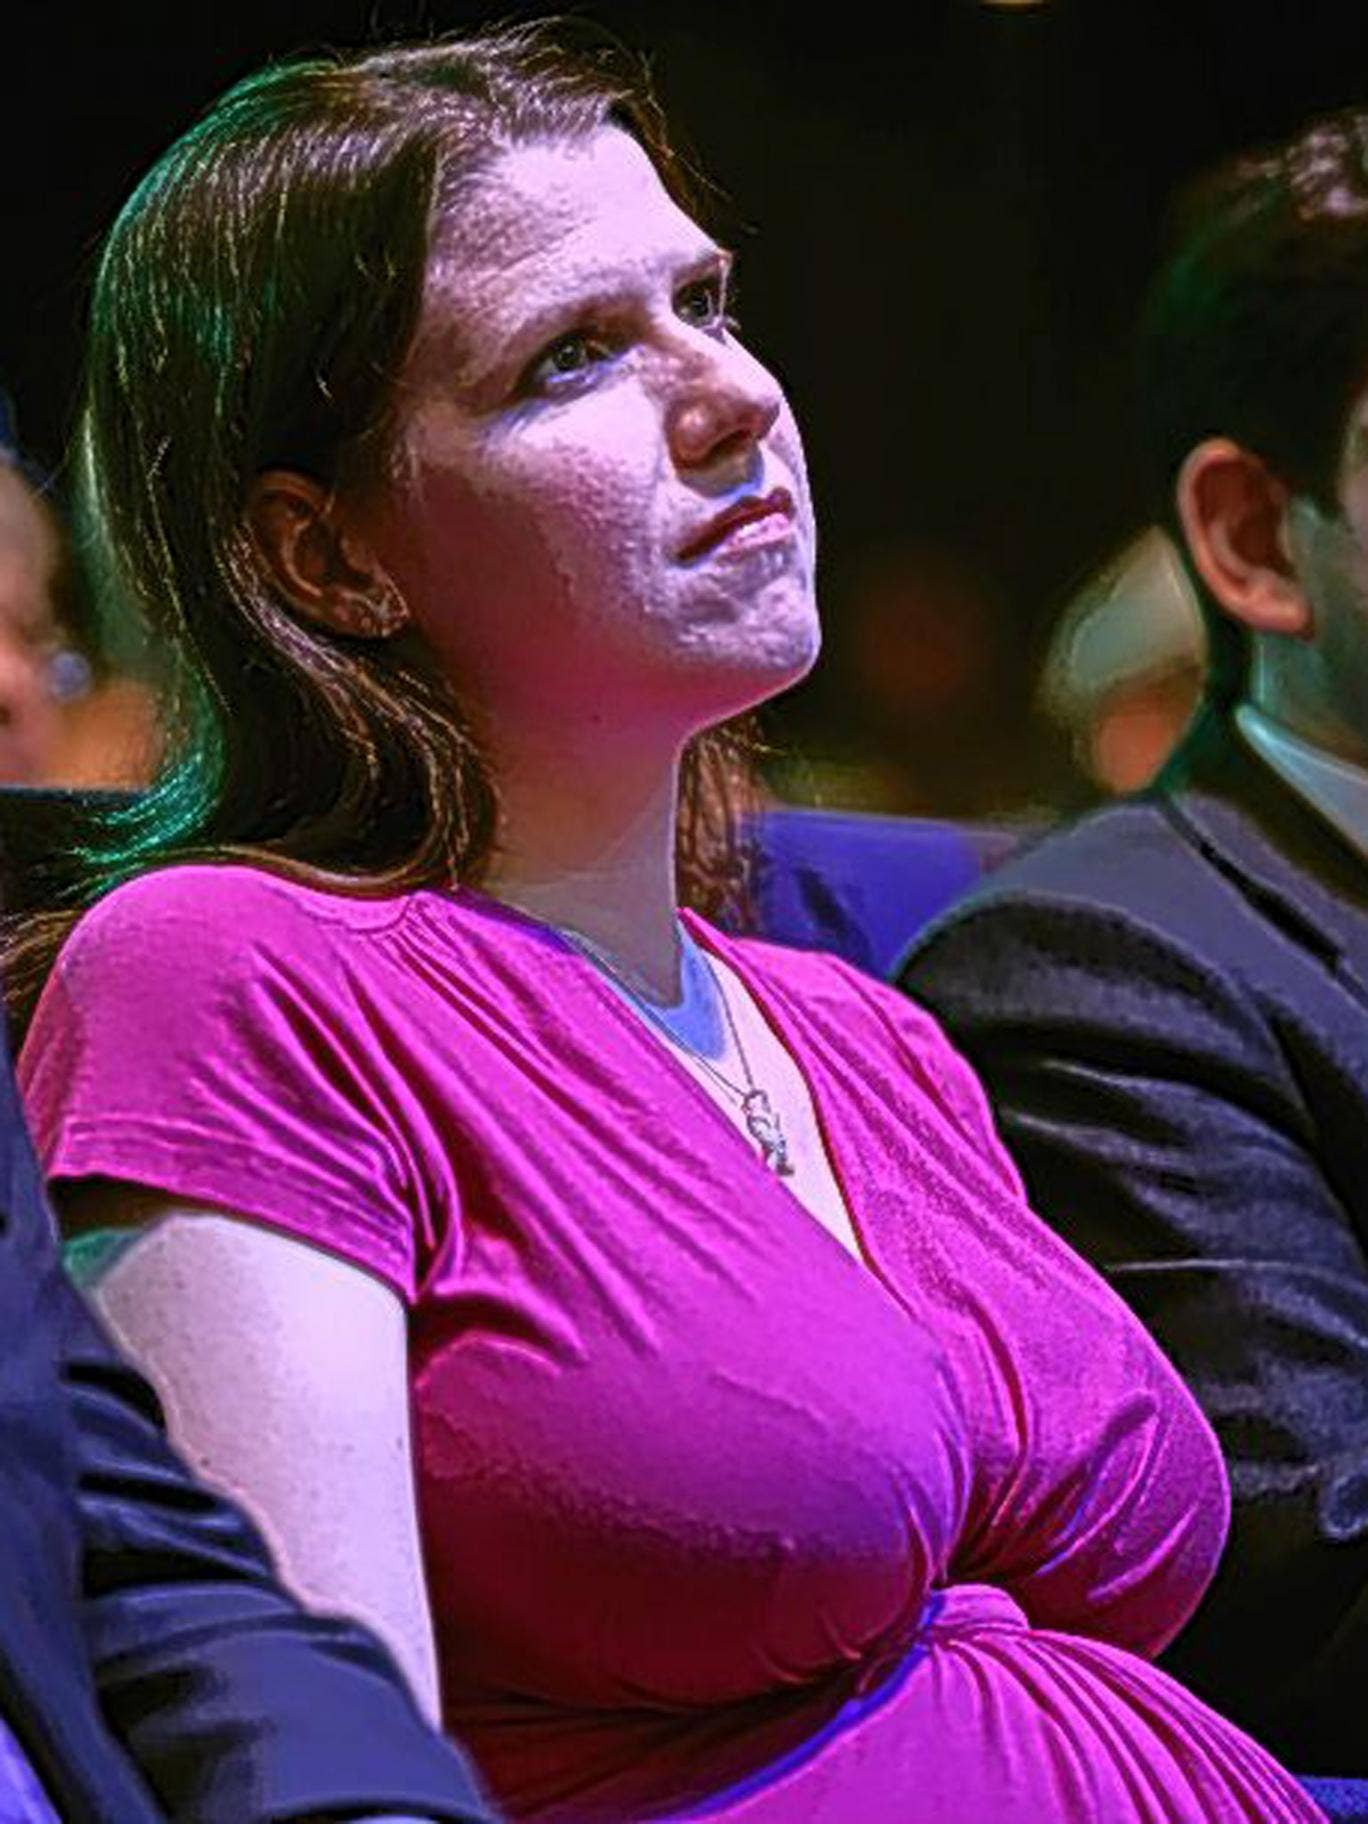 Swinson criticised the fact that MPs do not automatically get maternity leave